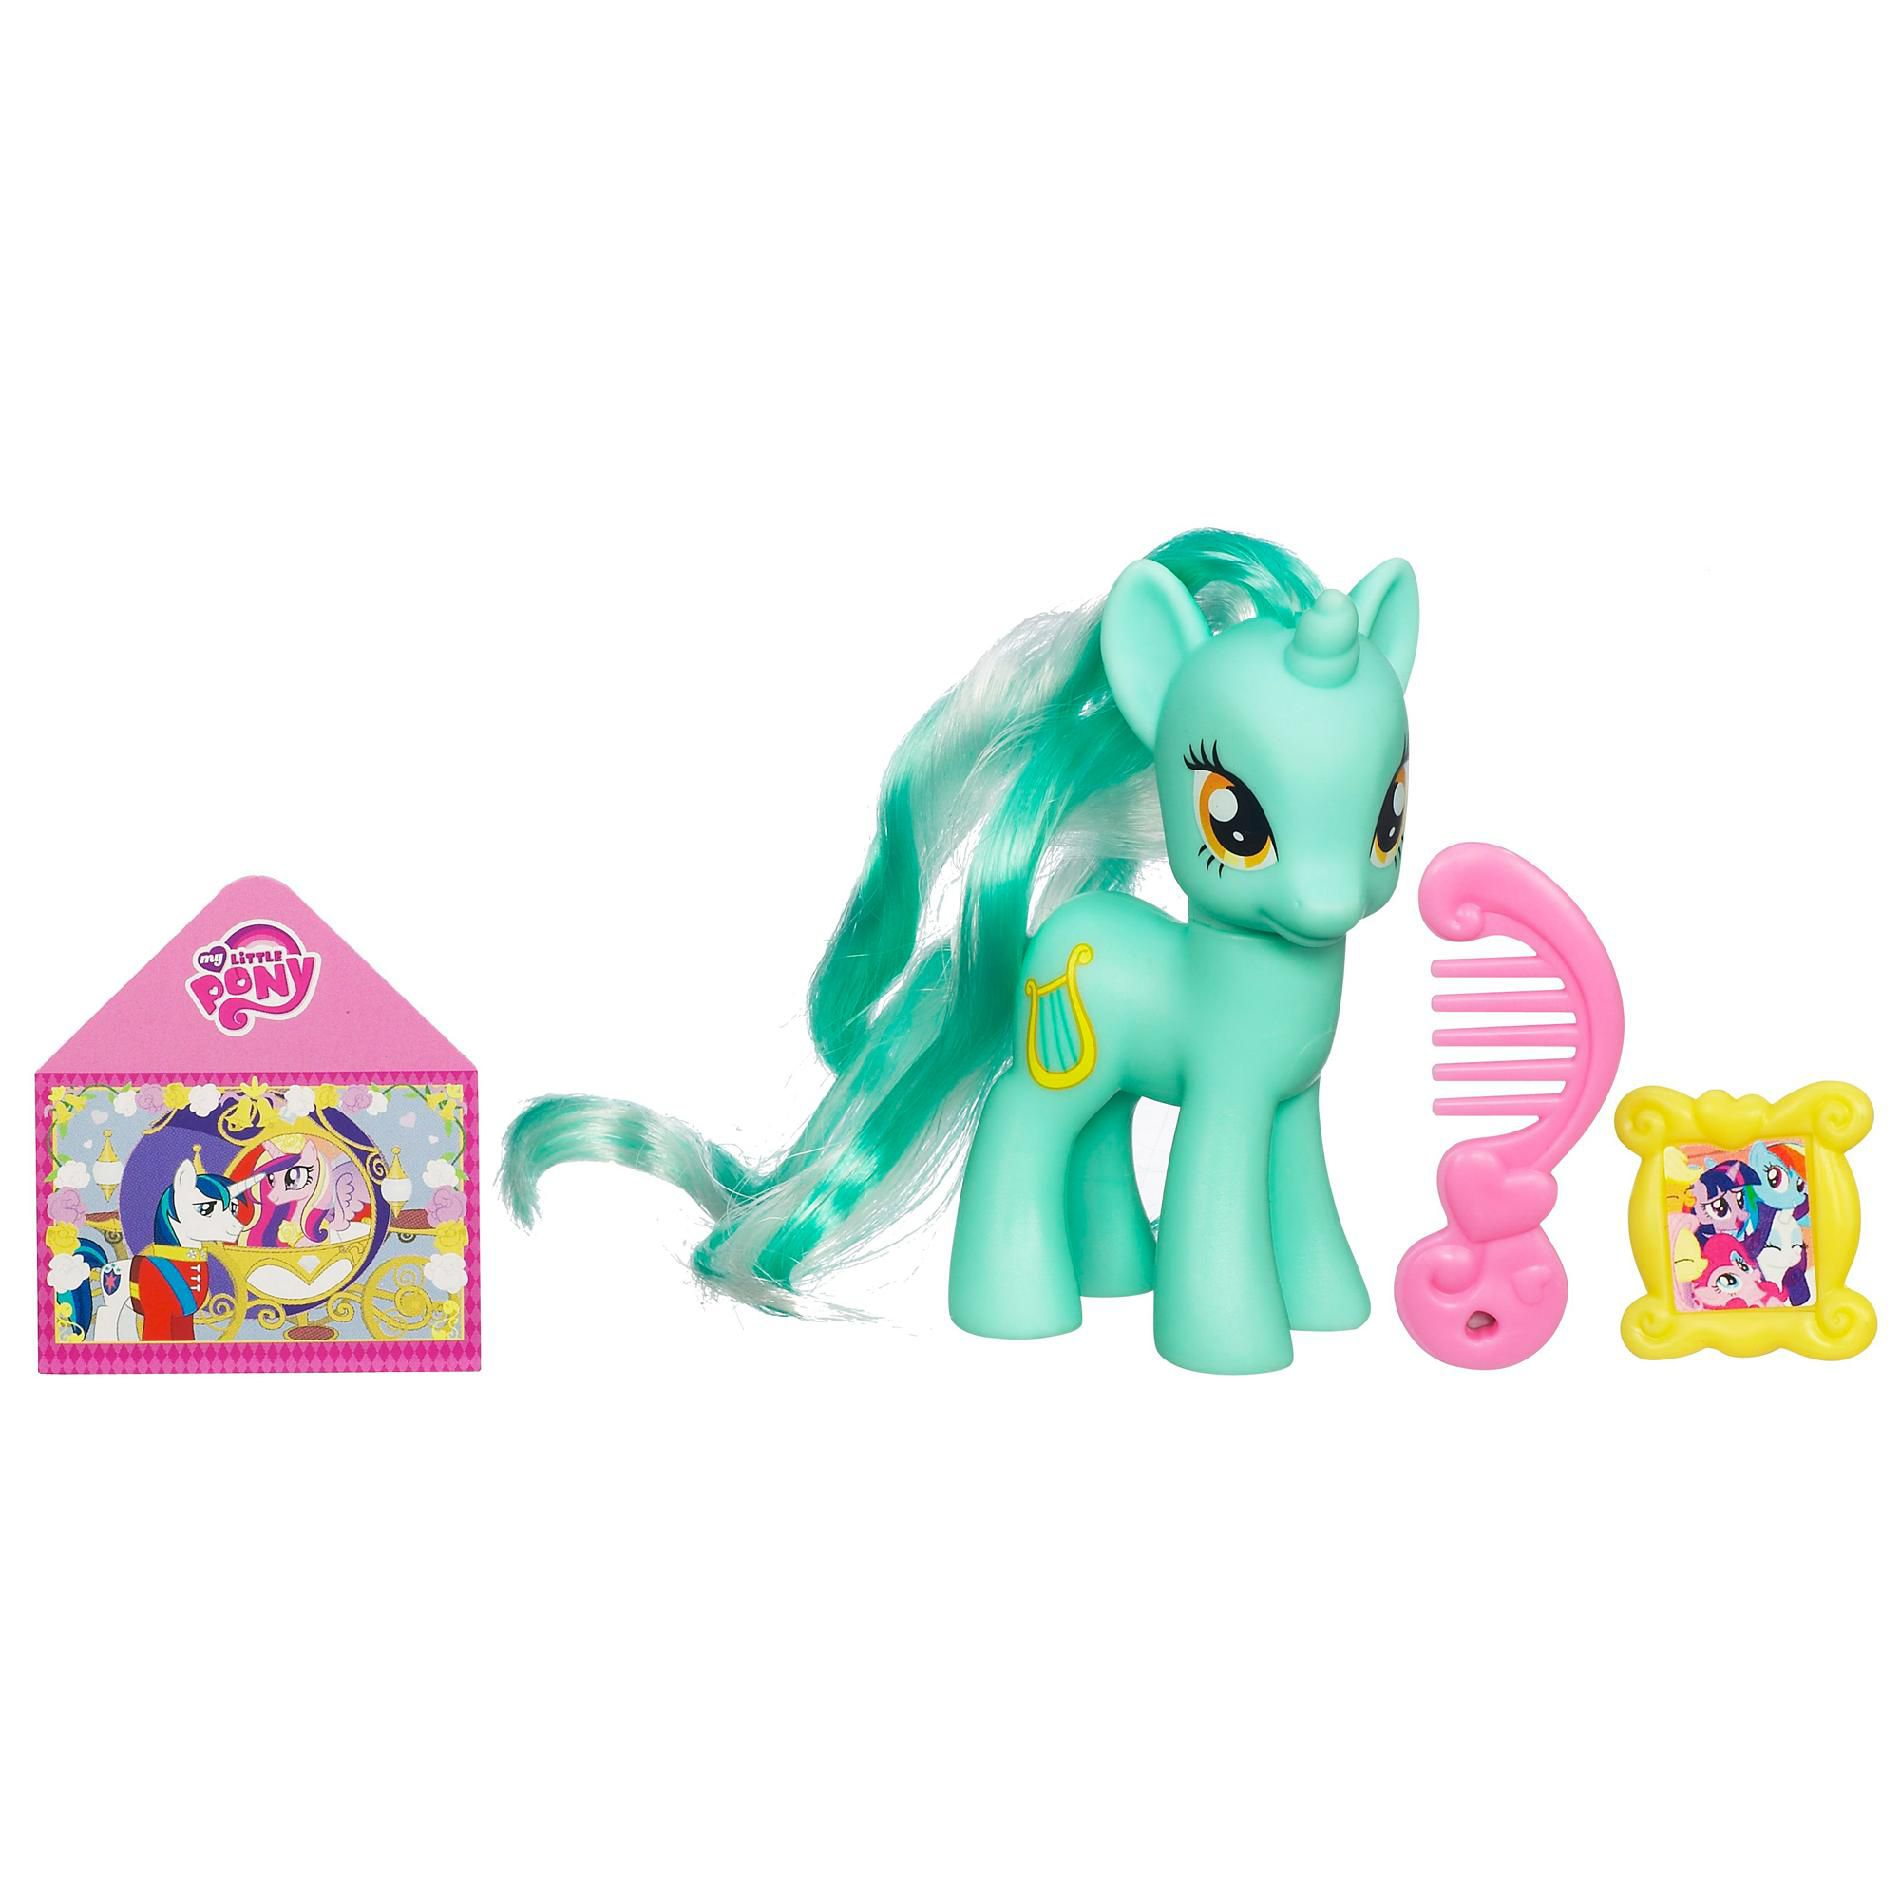 MY LITTLE PONY Friendship is Magic PONY WEDDING LYRA HEARTSTRINGS Figure                                                         at mygofer.com